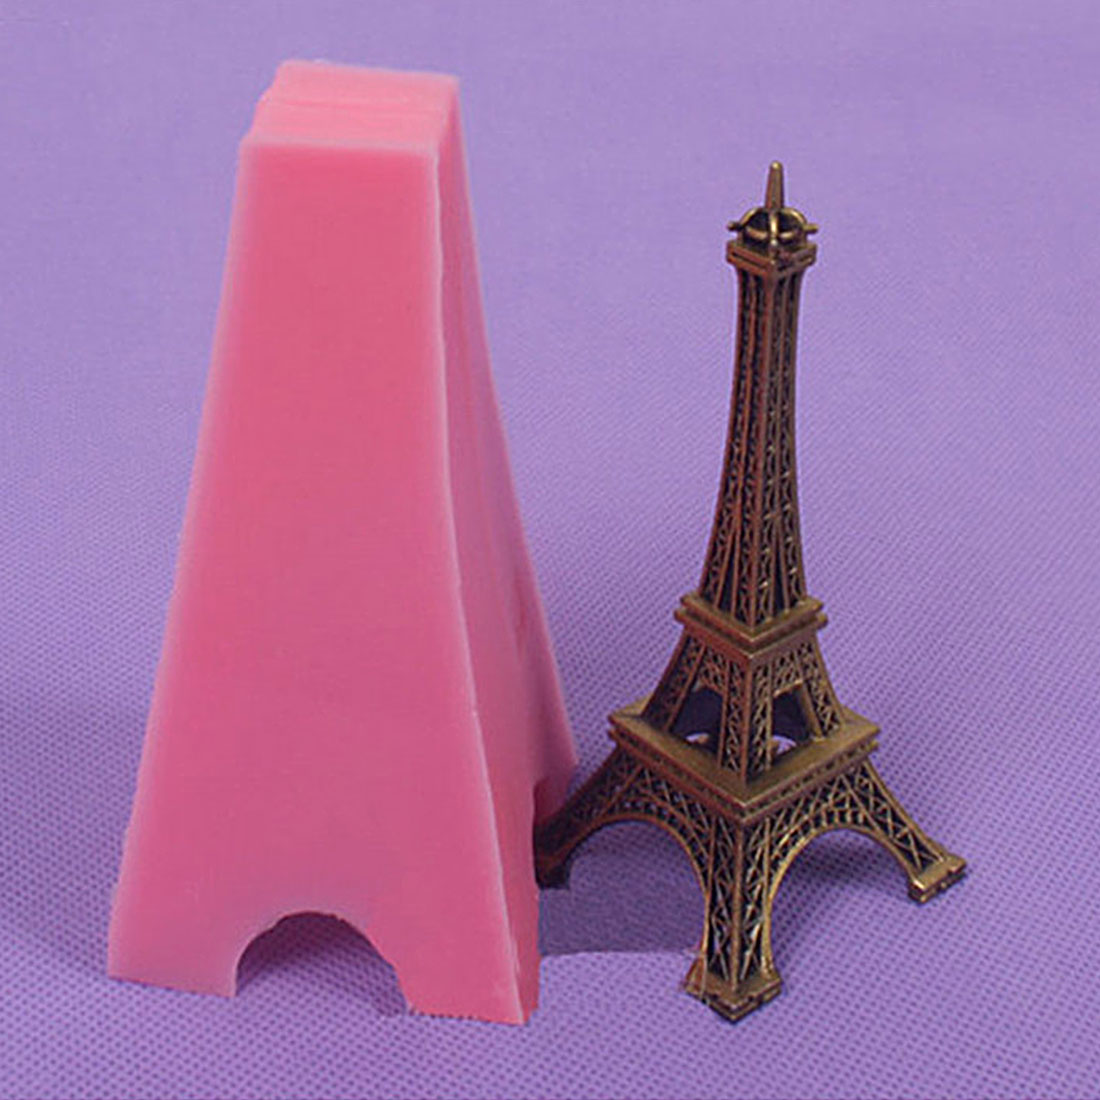 2018 Eiffel Tower 3D Shape Silicone Mold Cookie Fondant Cake Molds Chocolate Pudding Mould DIY Candy Pastry Kitchen Baking Tools